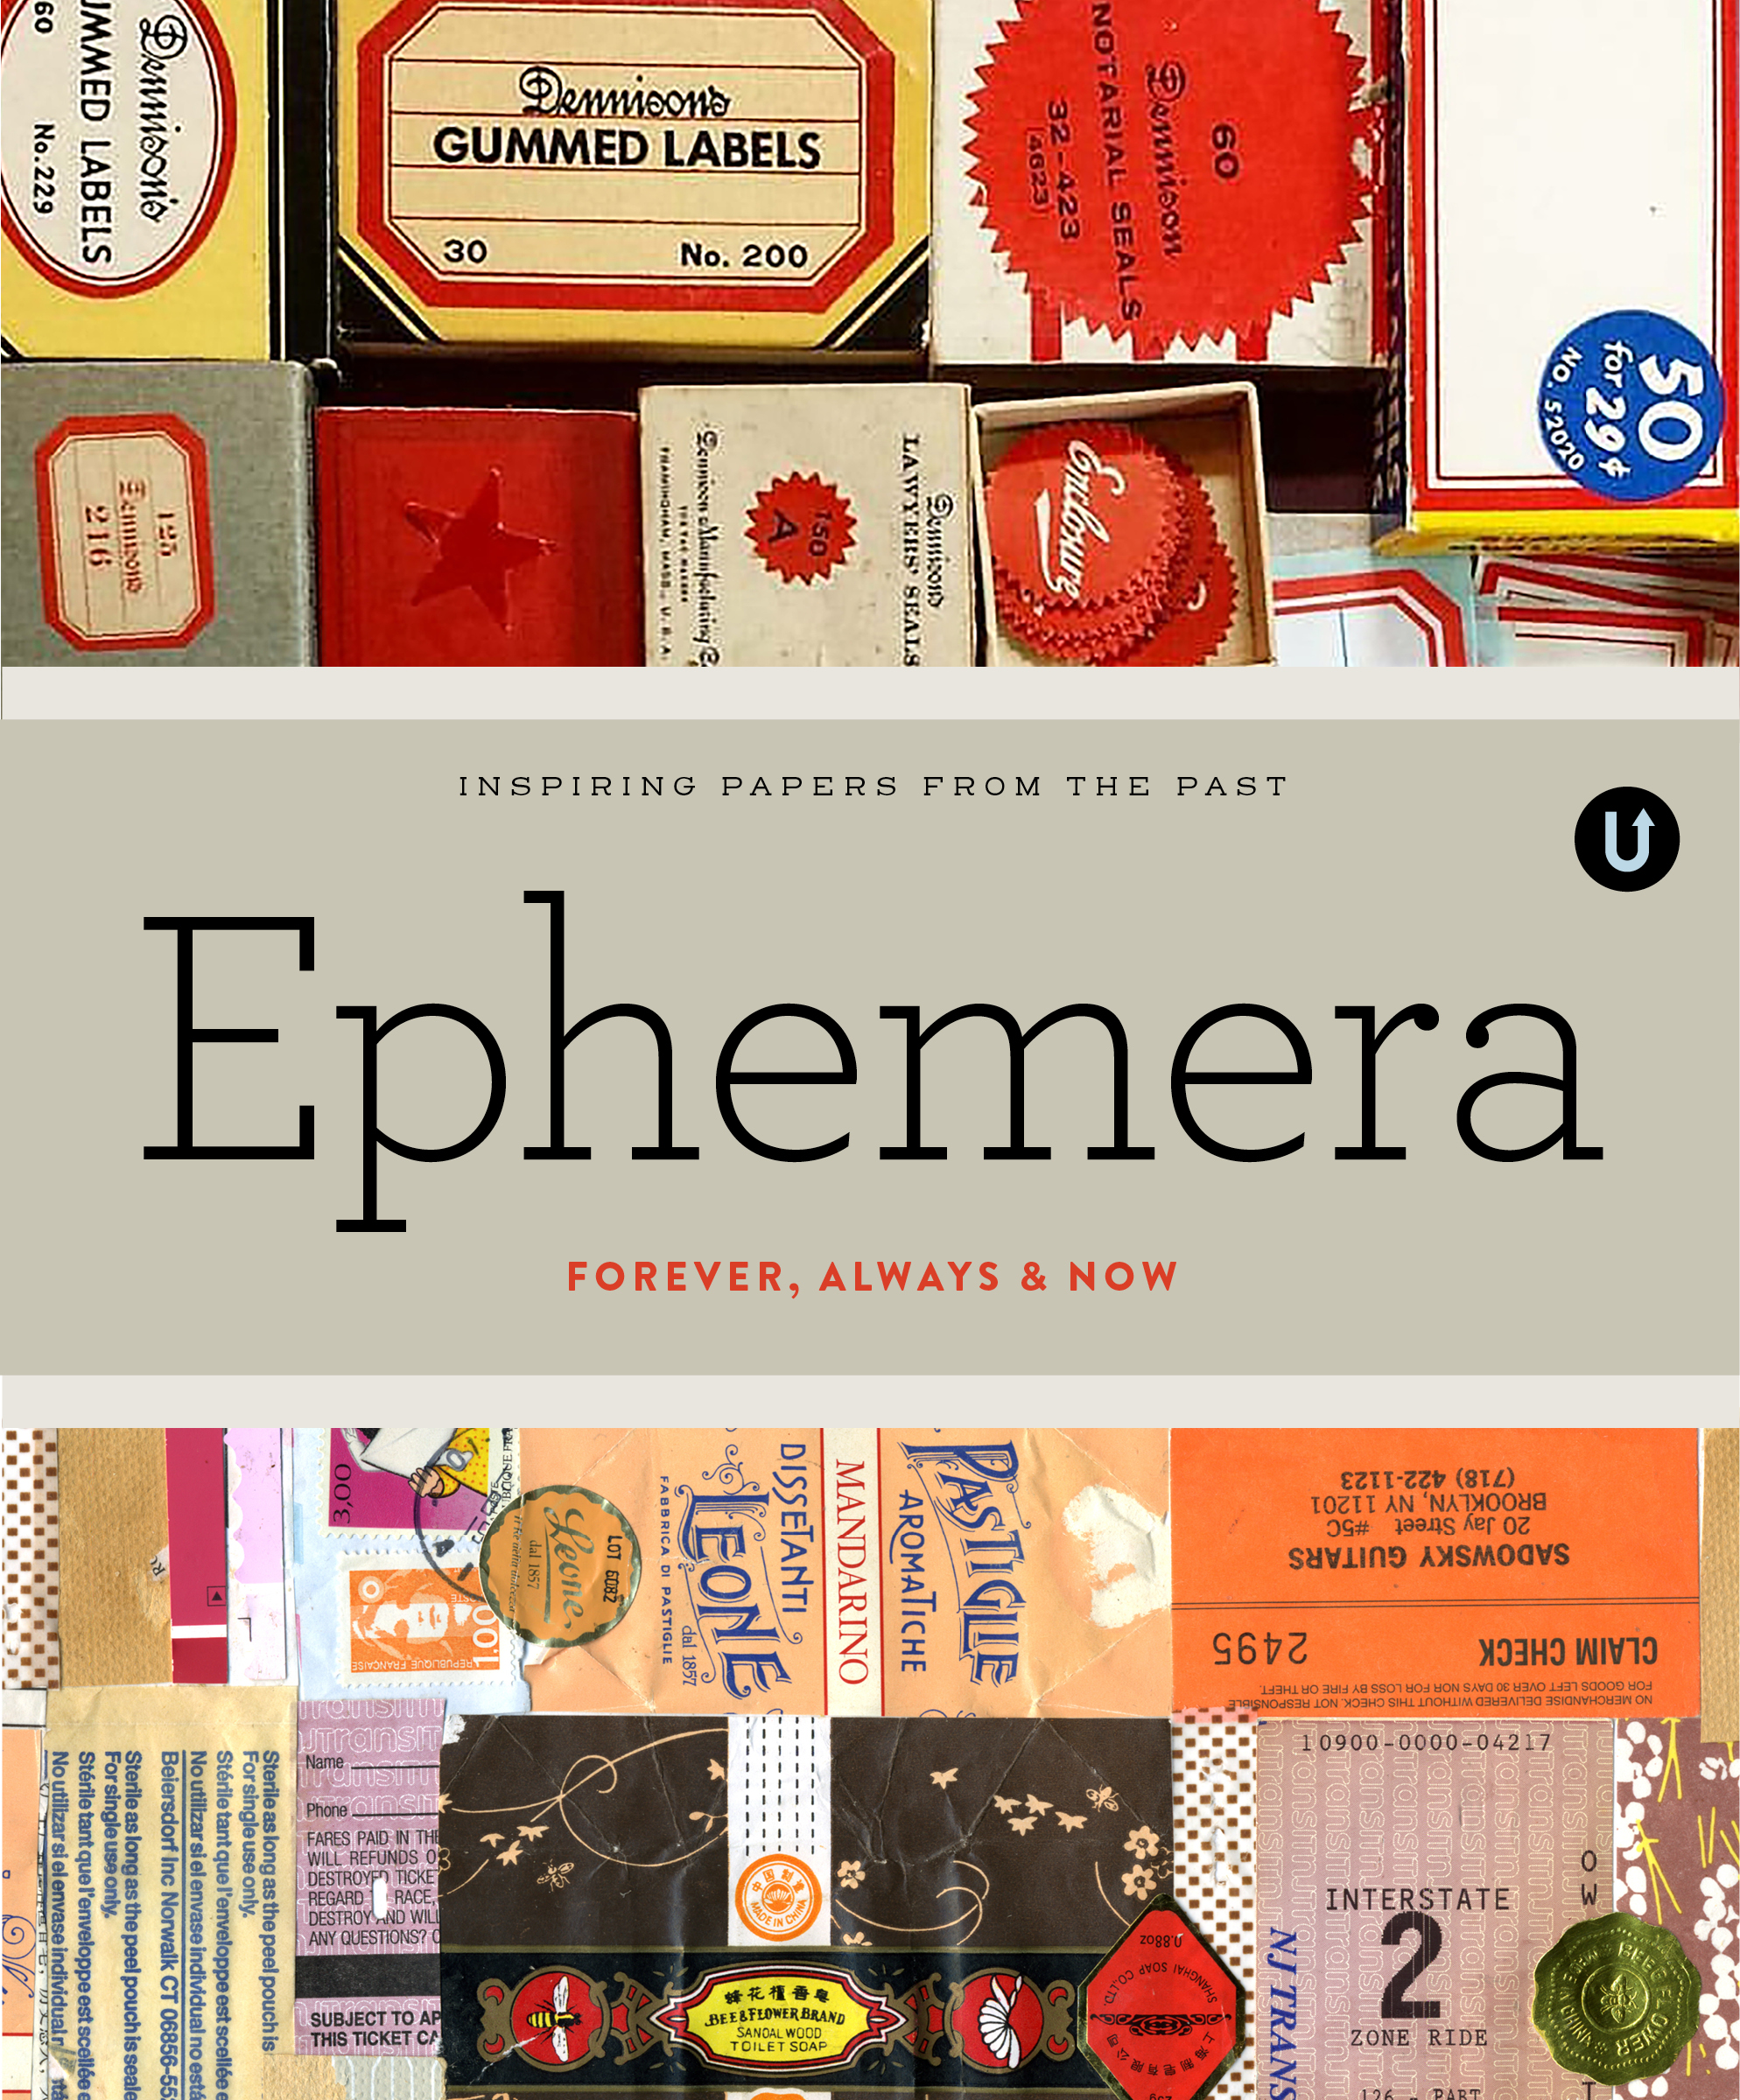 Ephemera cover mockup.jpg